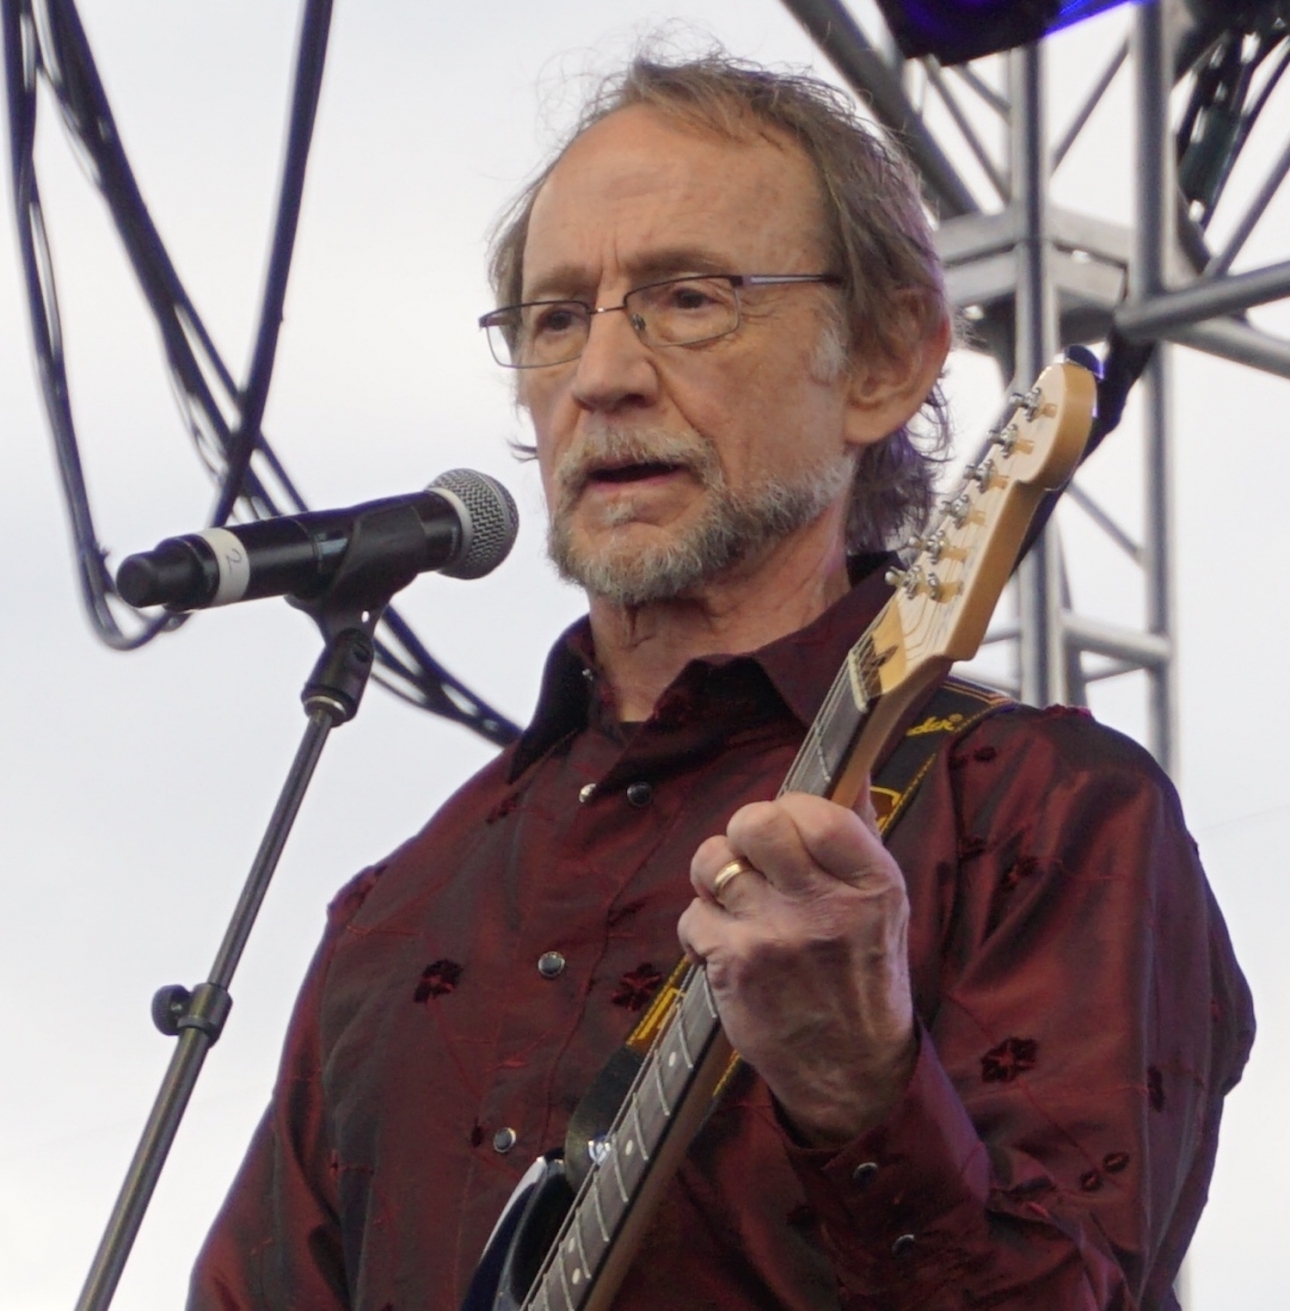 The Monkees' Peter Tork has died aged 77